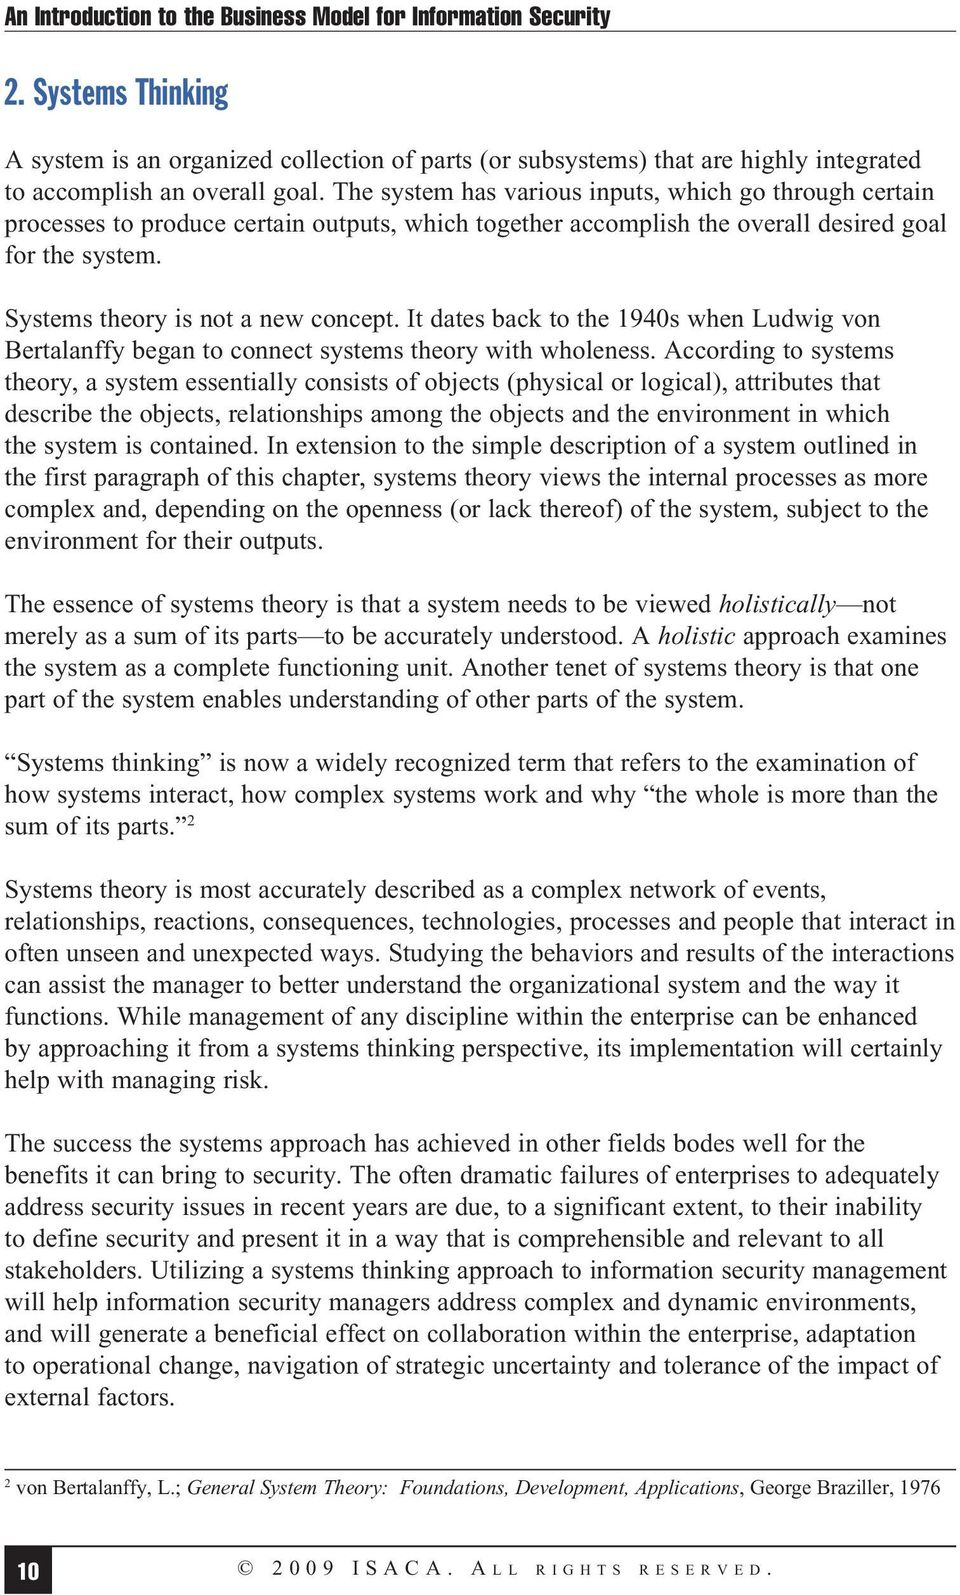 The system has various inputs, which go through certain processes to produce certain outputs, which together accomplish the overall desired goal for the system. Systems theory is not a new concept.